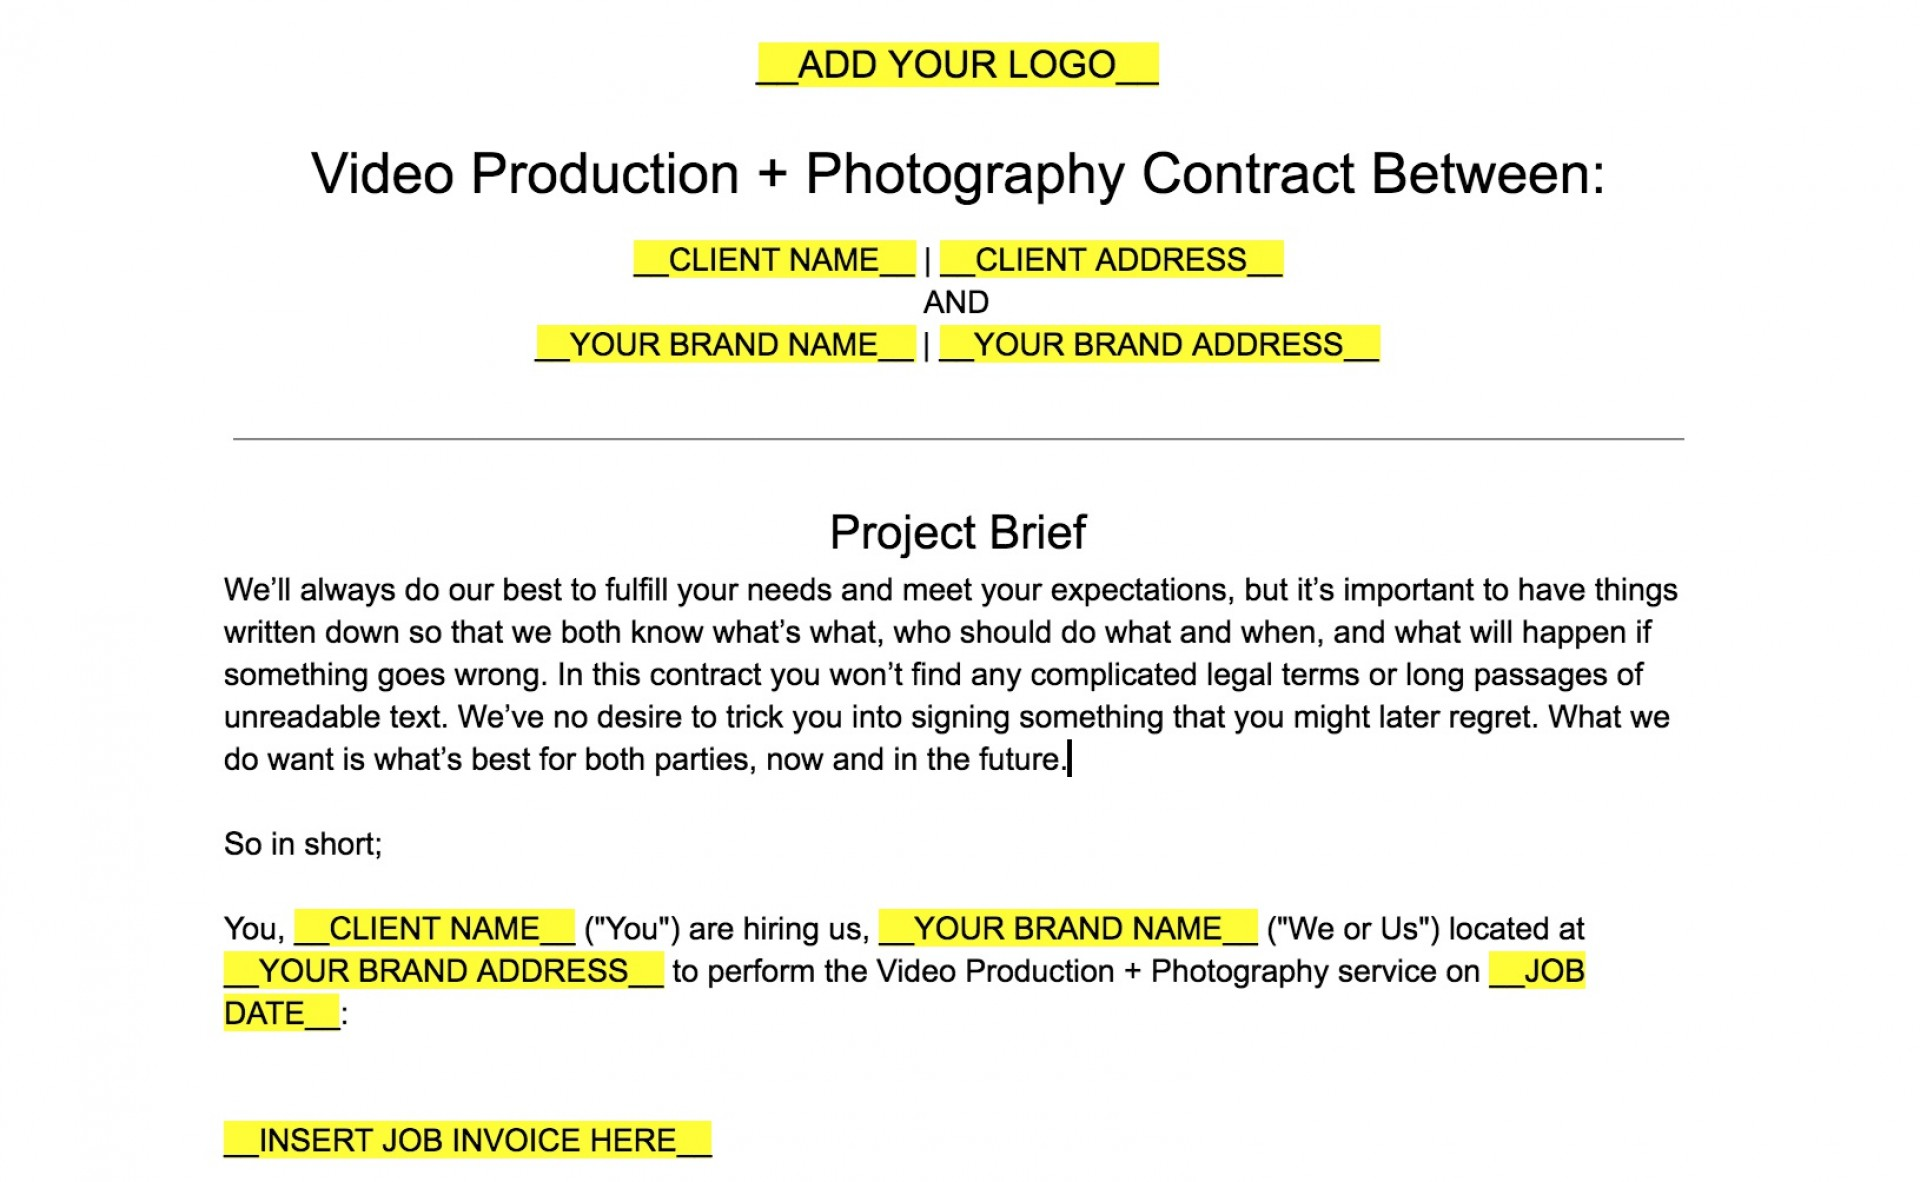 008 Formidable Wedding Videography Contract Template High Definition  Free1920